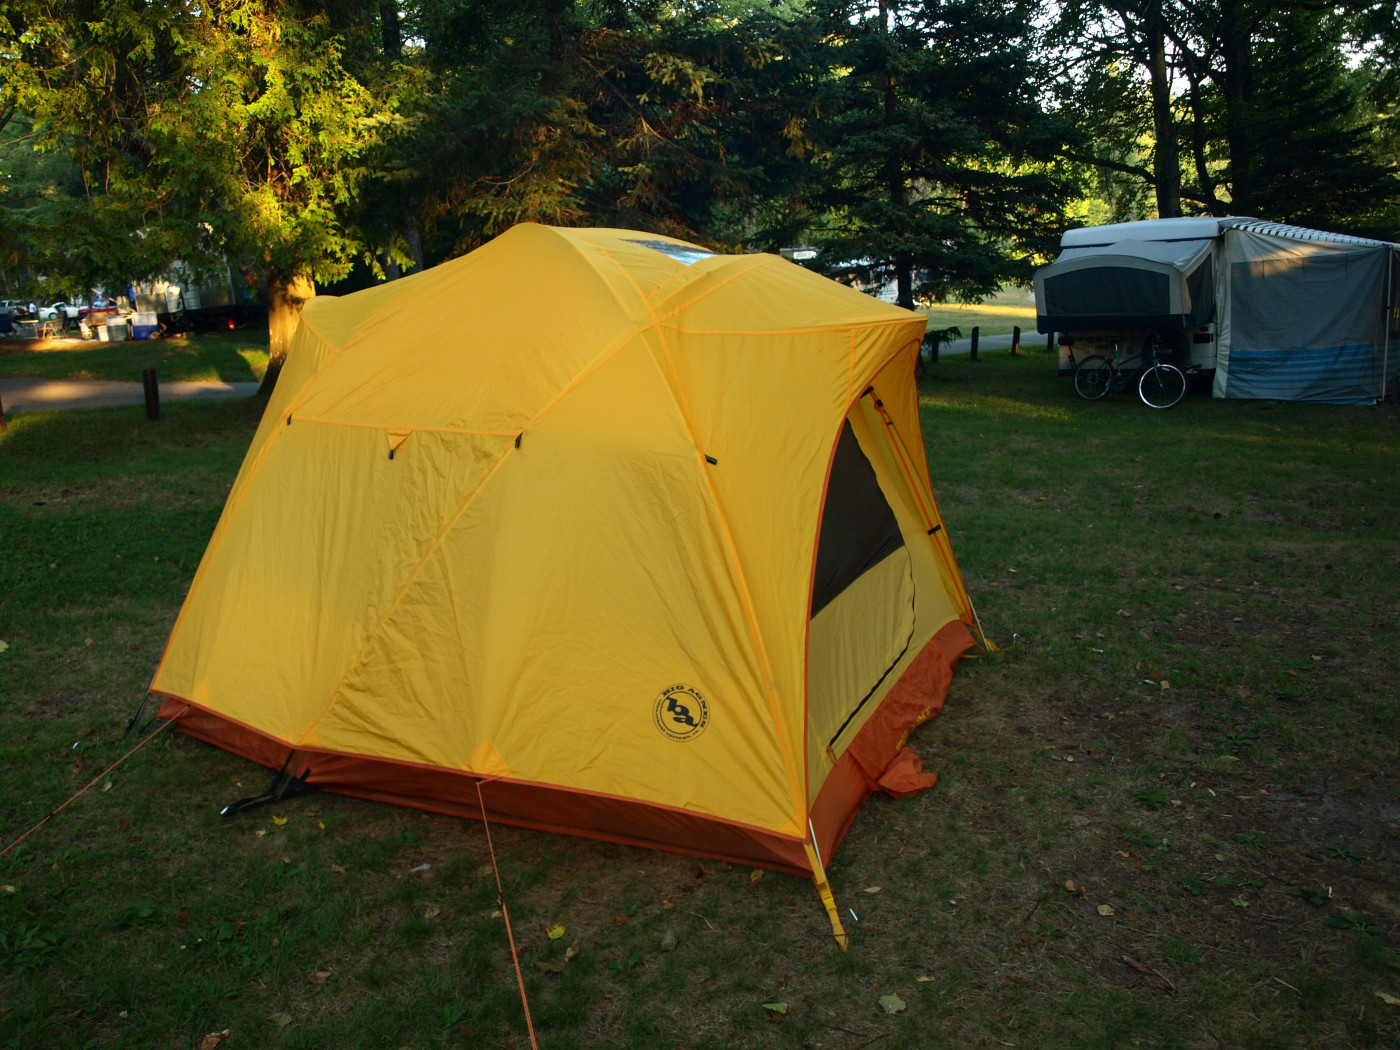 An example of a three-season, four-person tent.